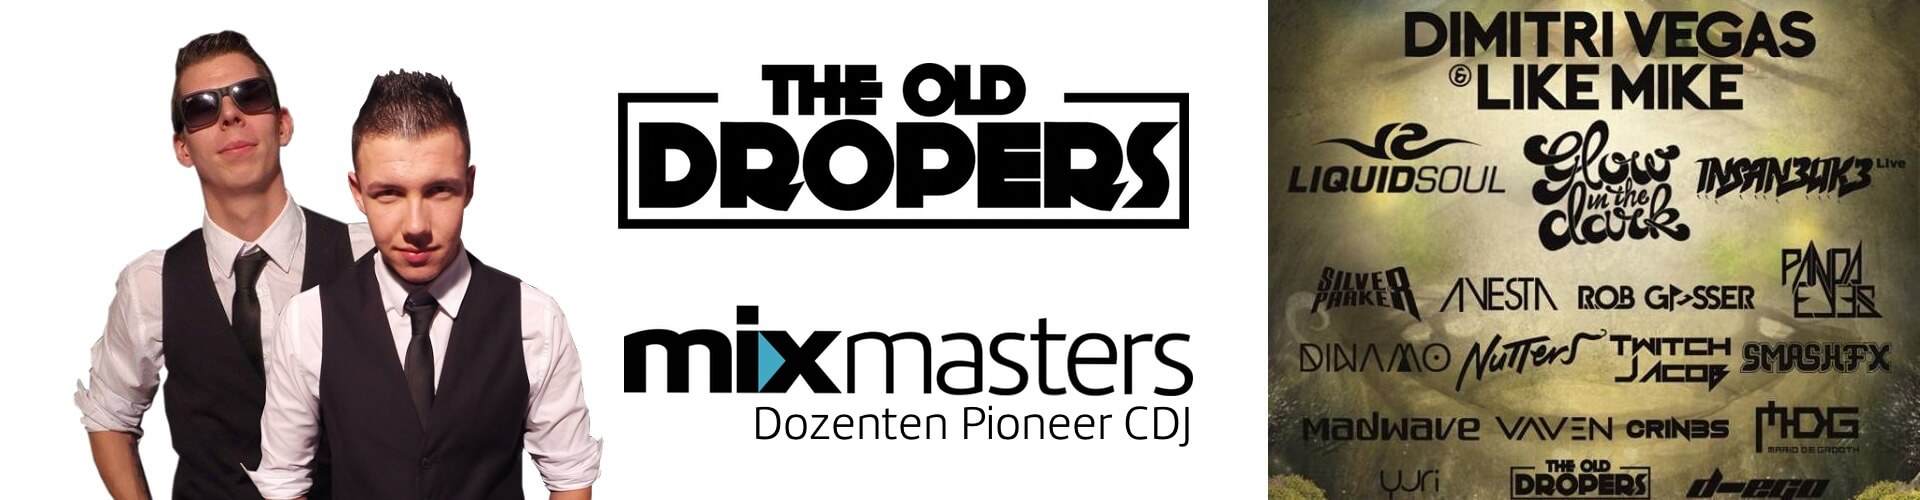 The-old-Dropers-Banner-V2